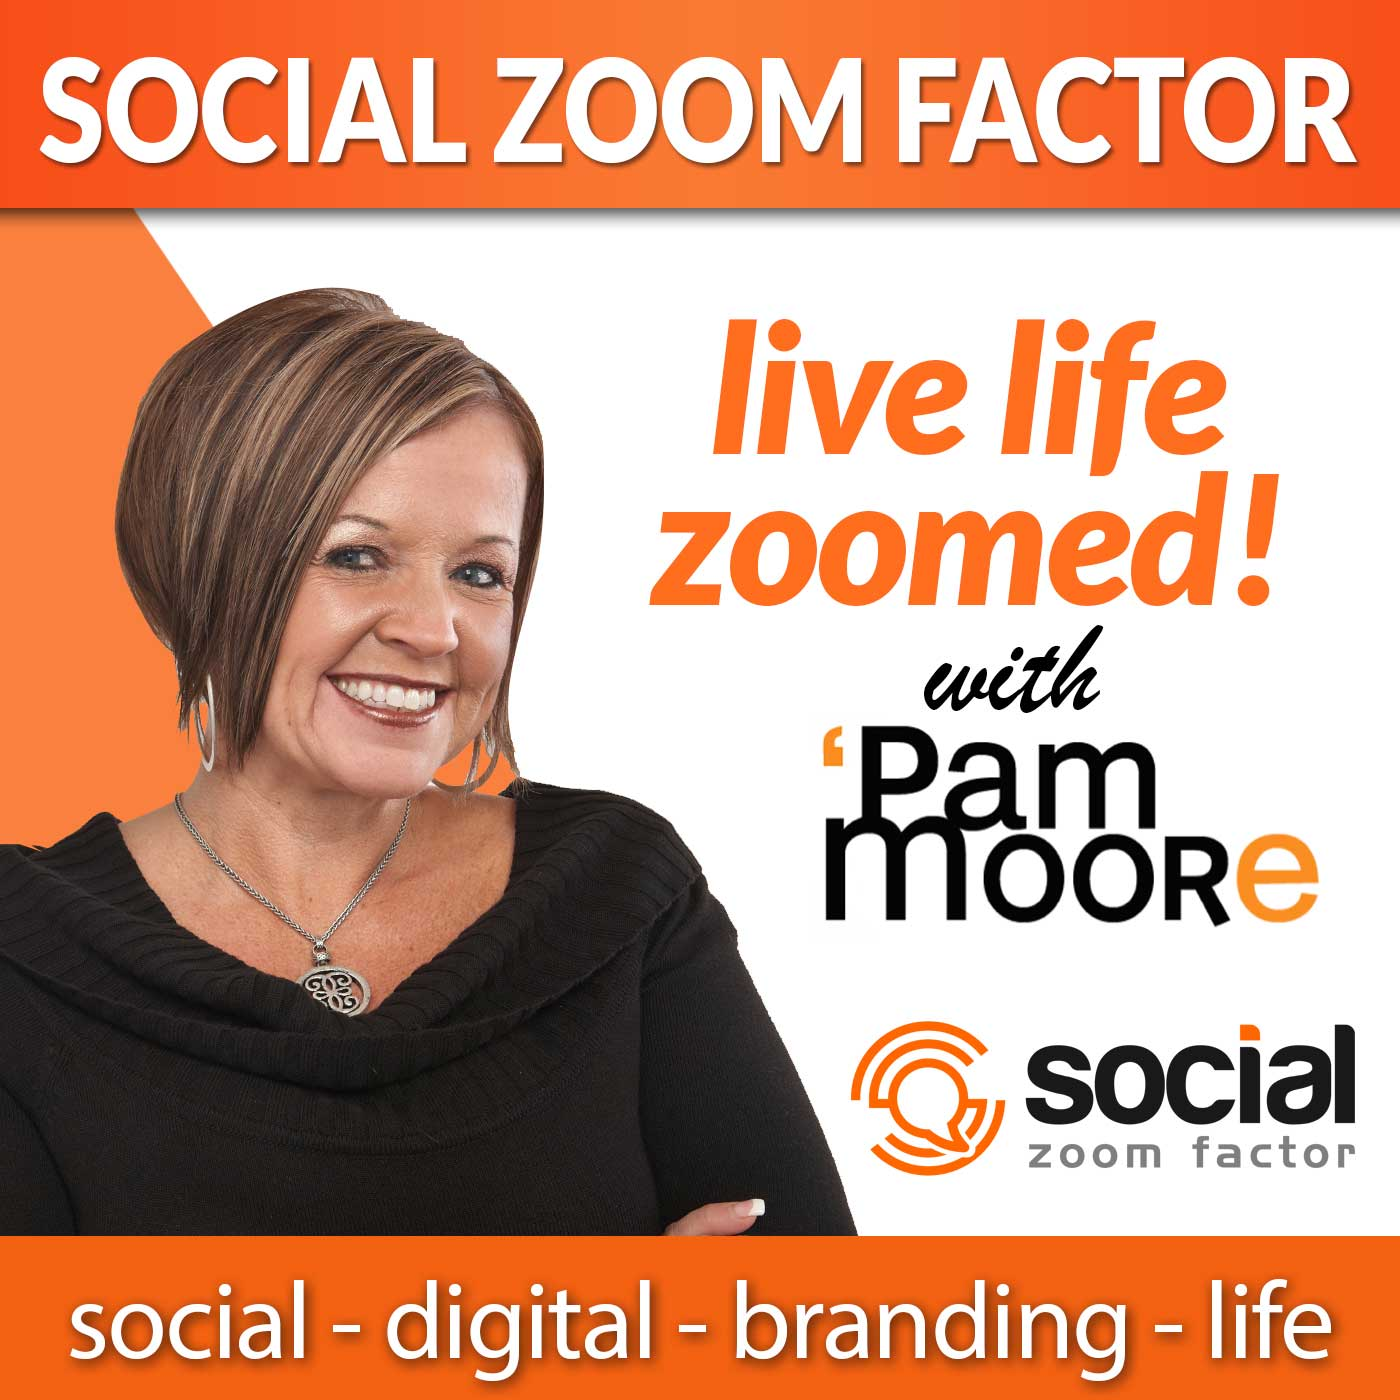 Social Media Zoom Factor with Pam Moore | Social Media Marketing | Branding |Business | Entrepreneur | Small Business | Digital Marketing | Content Marketing | Marketing | Influencer